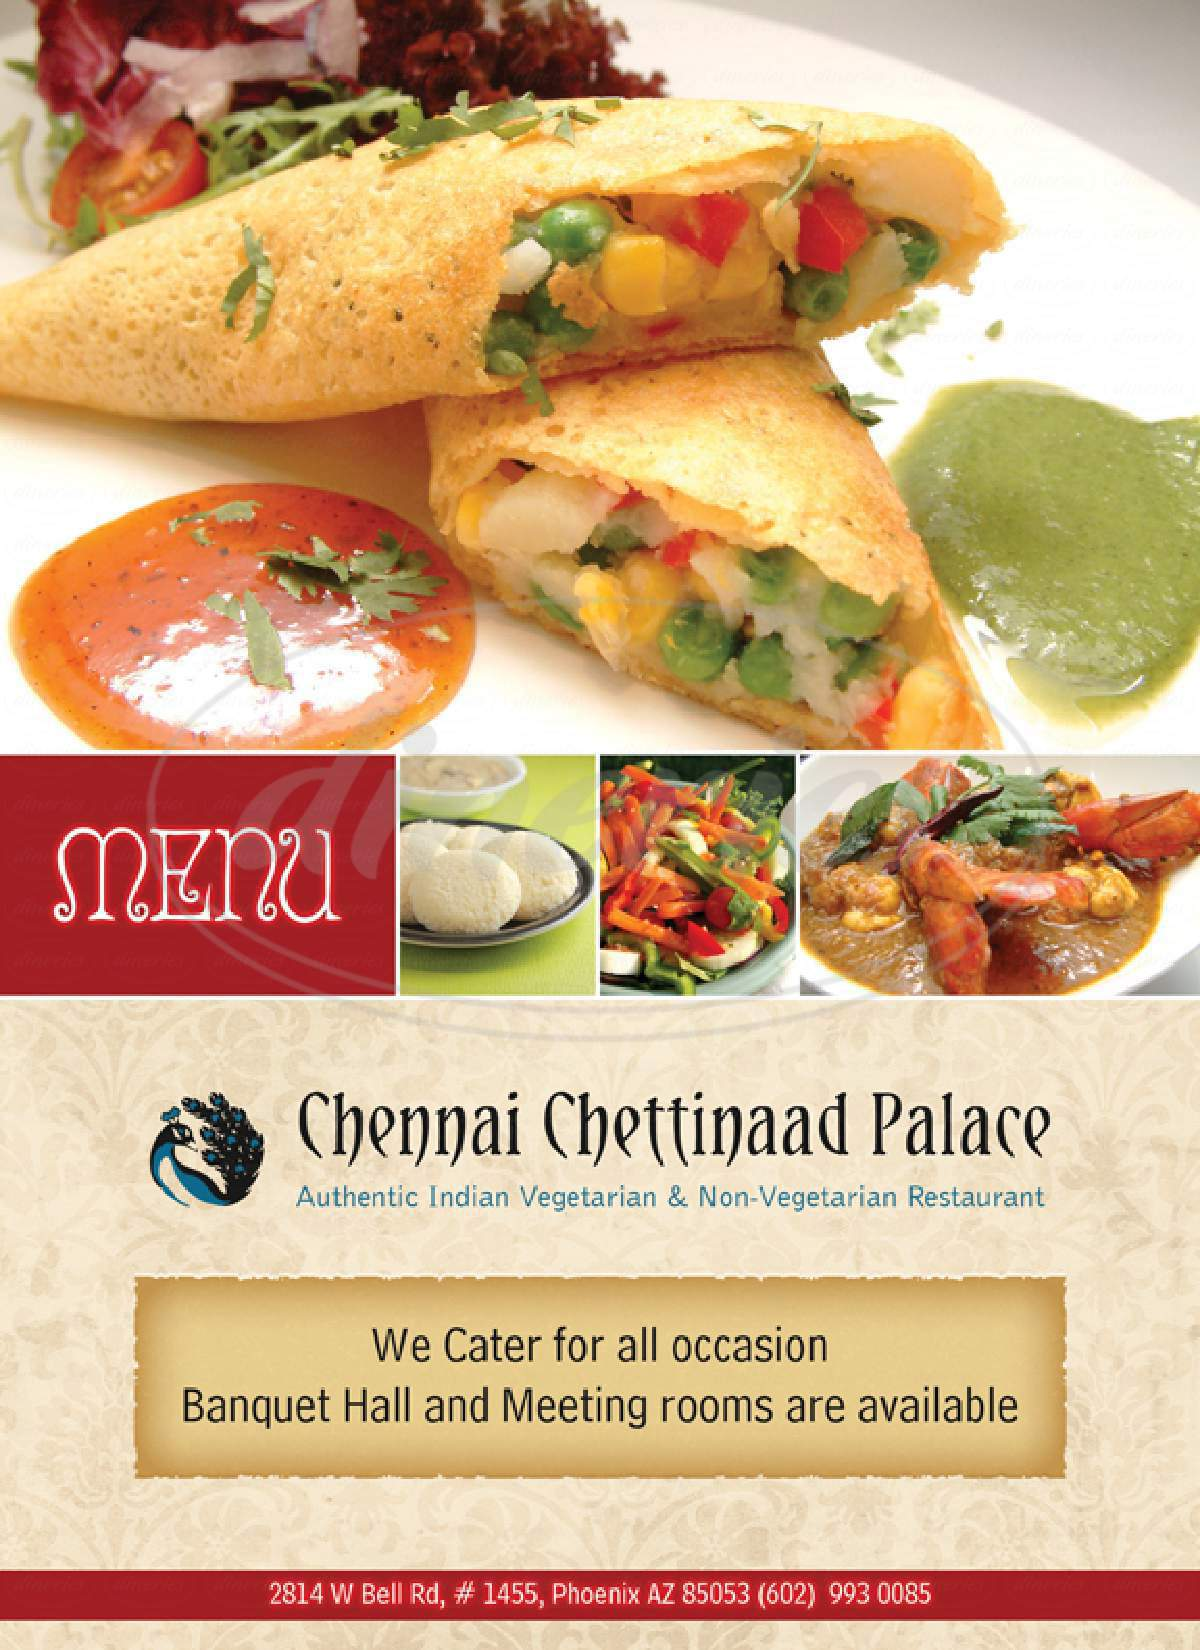 menu for Chennai Chettinaad Palace